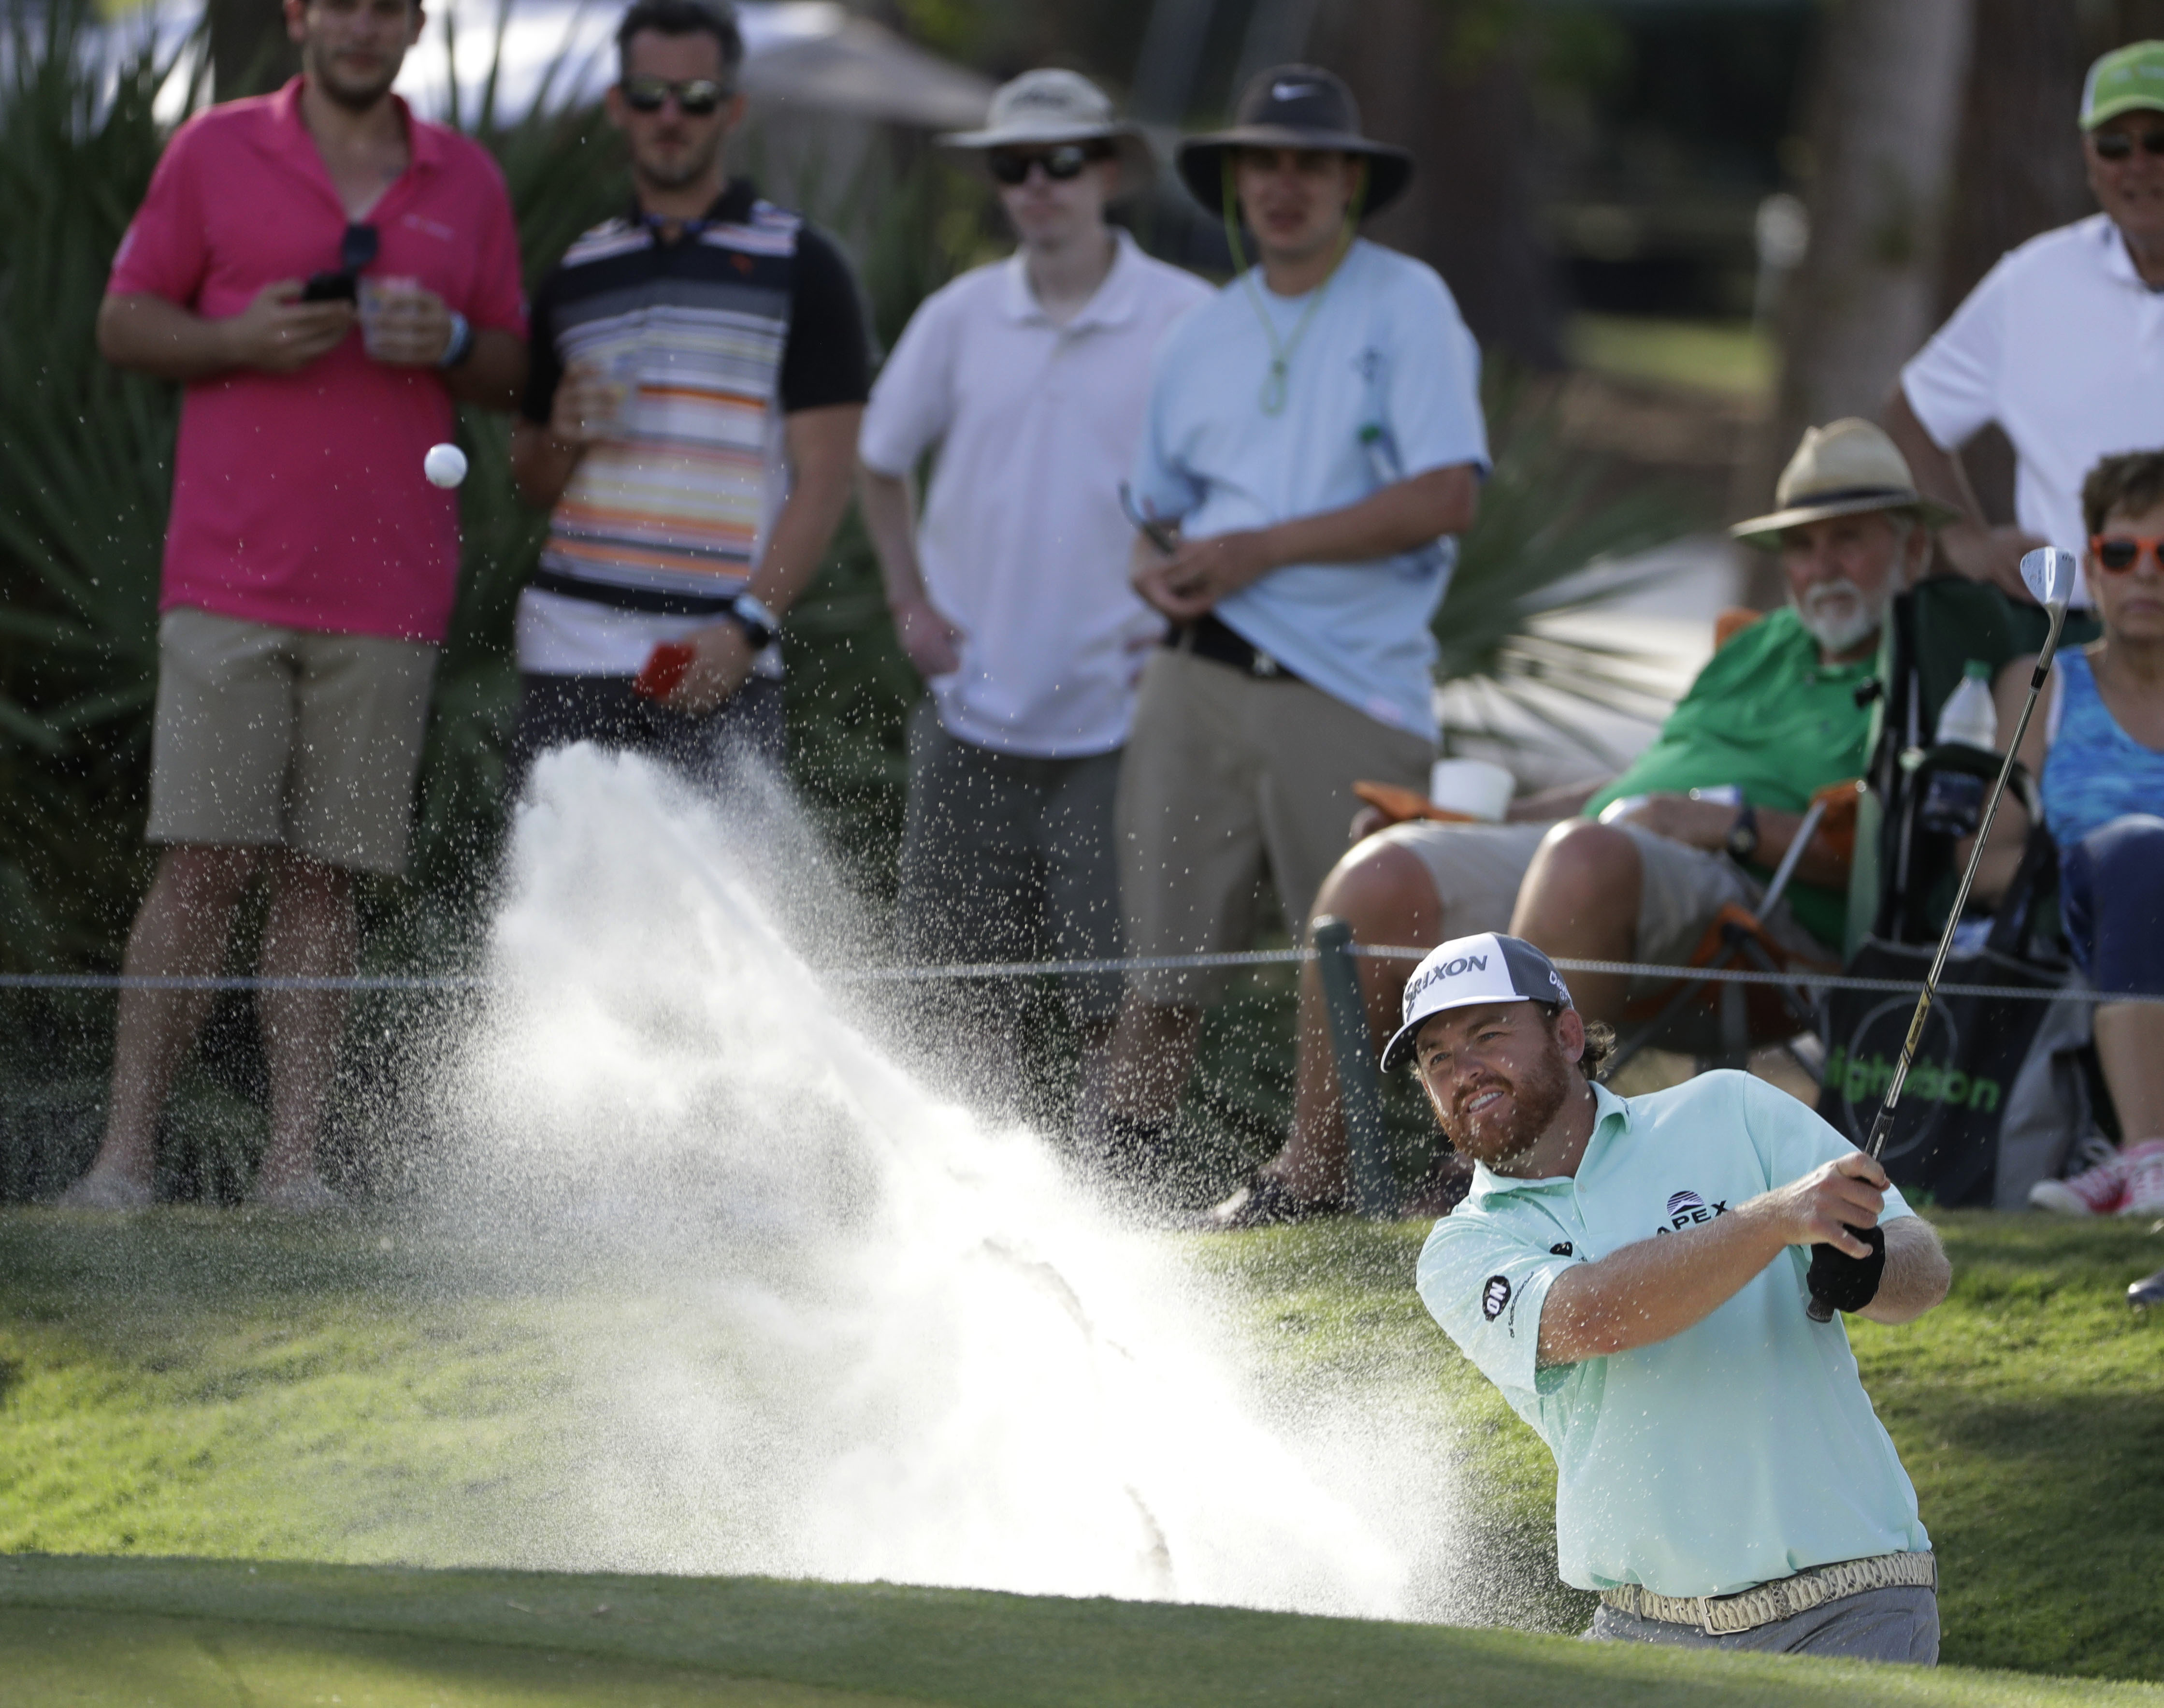 J.B. Holmes hits from a bunker on the eighth hole, during the second round of The Players Championship golf tournament Friday, May 12, 2017, in Ponte Vedra Beach, Fla. (AP Photo/Chris O'Meara)